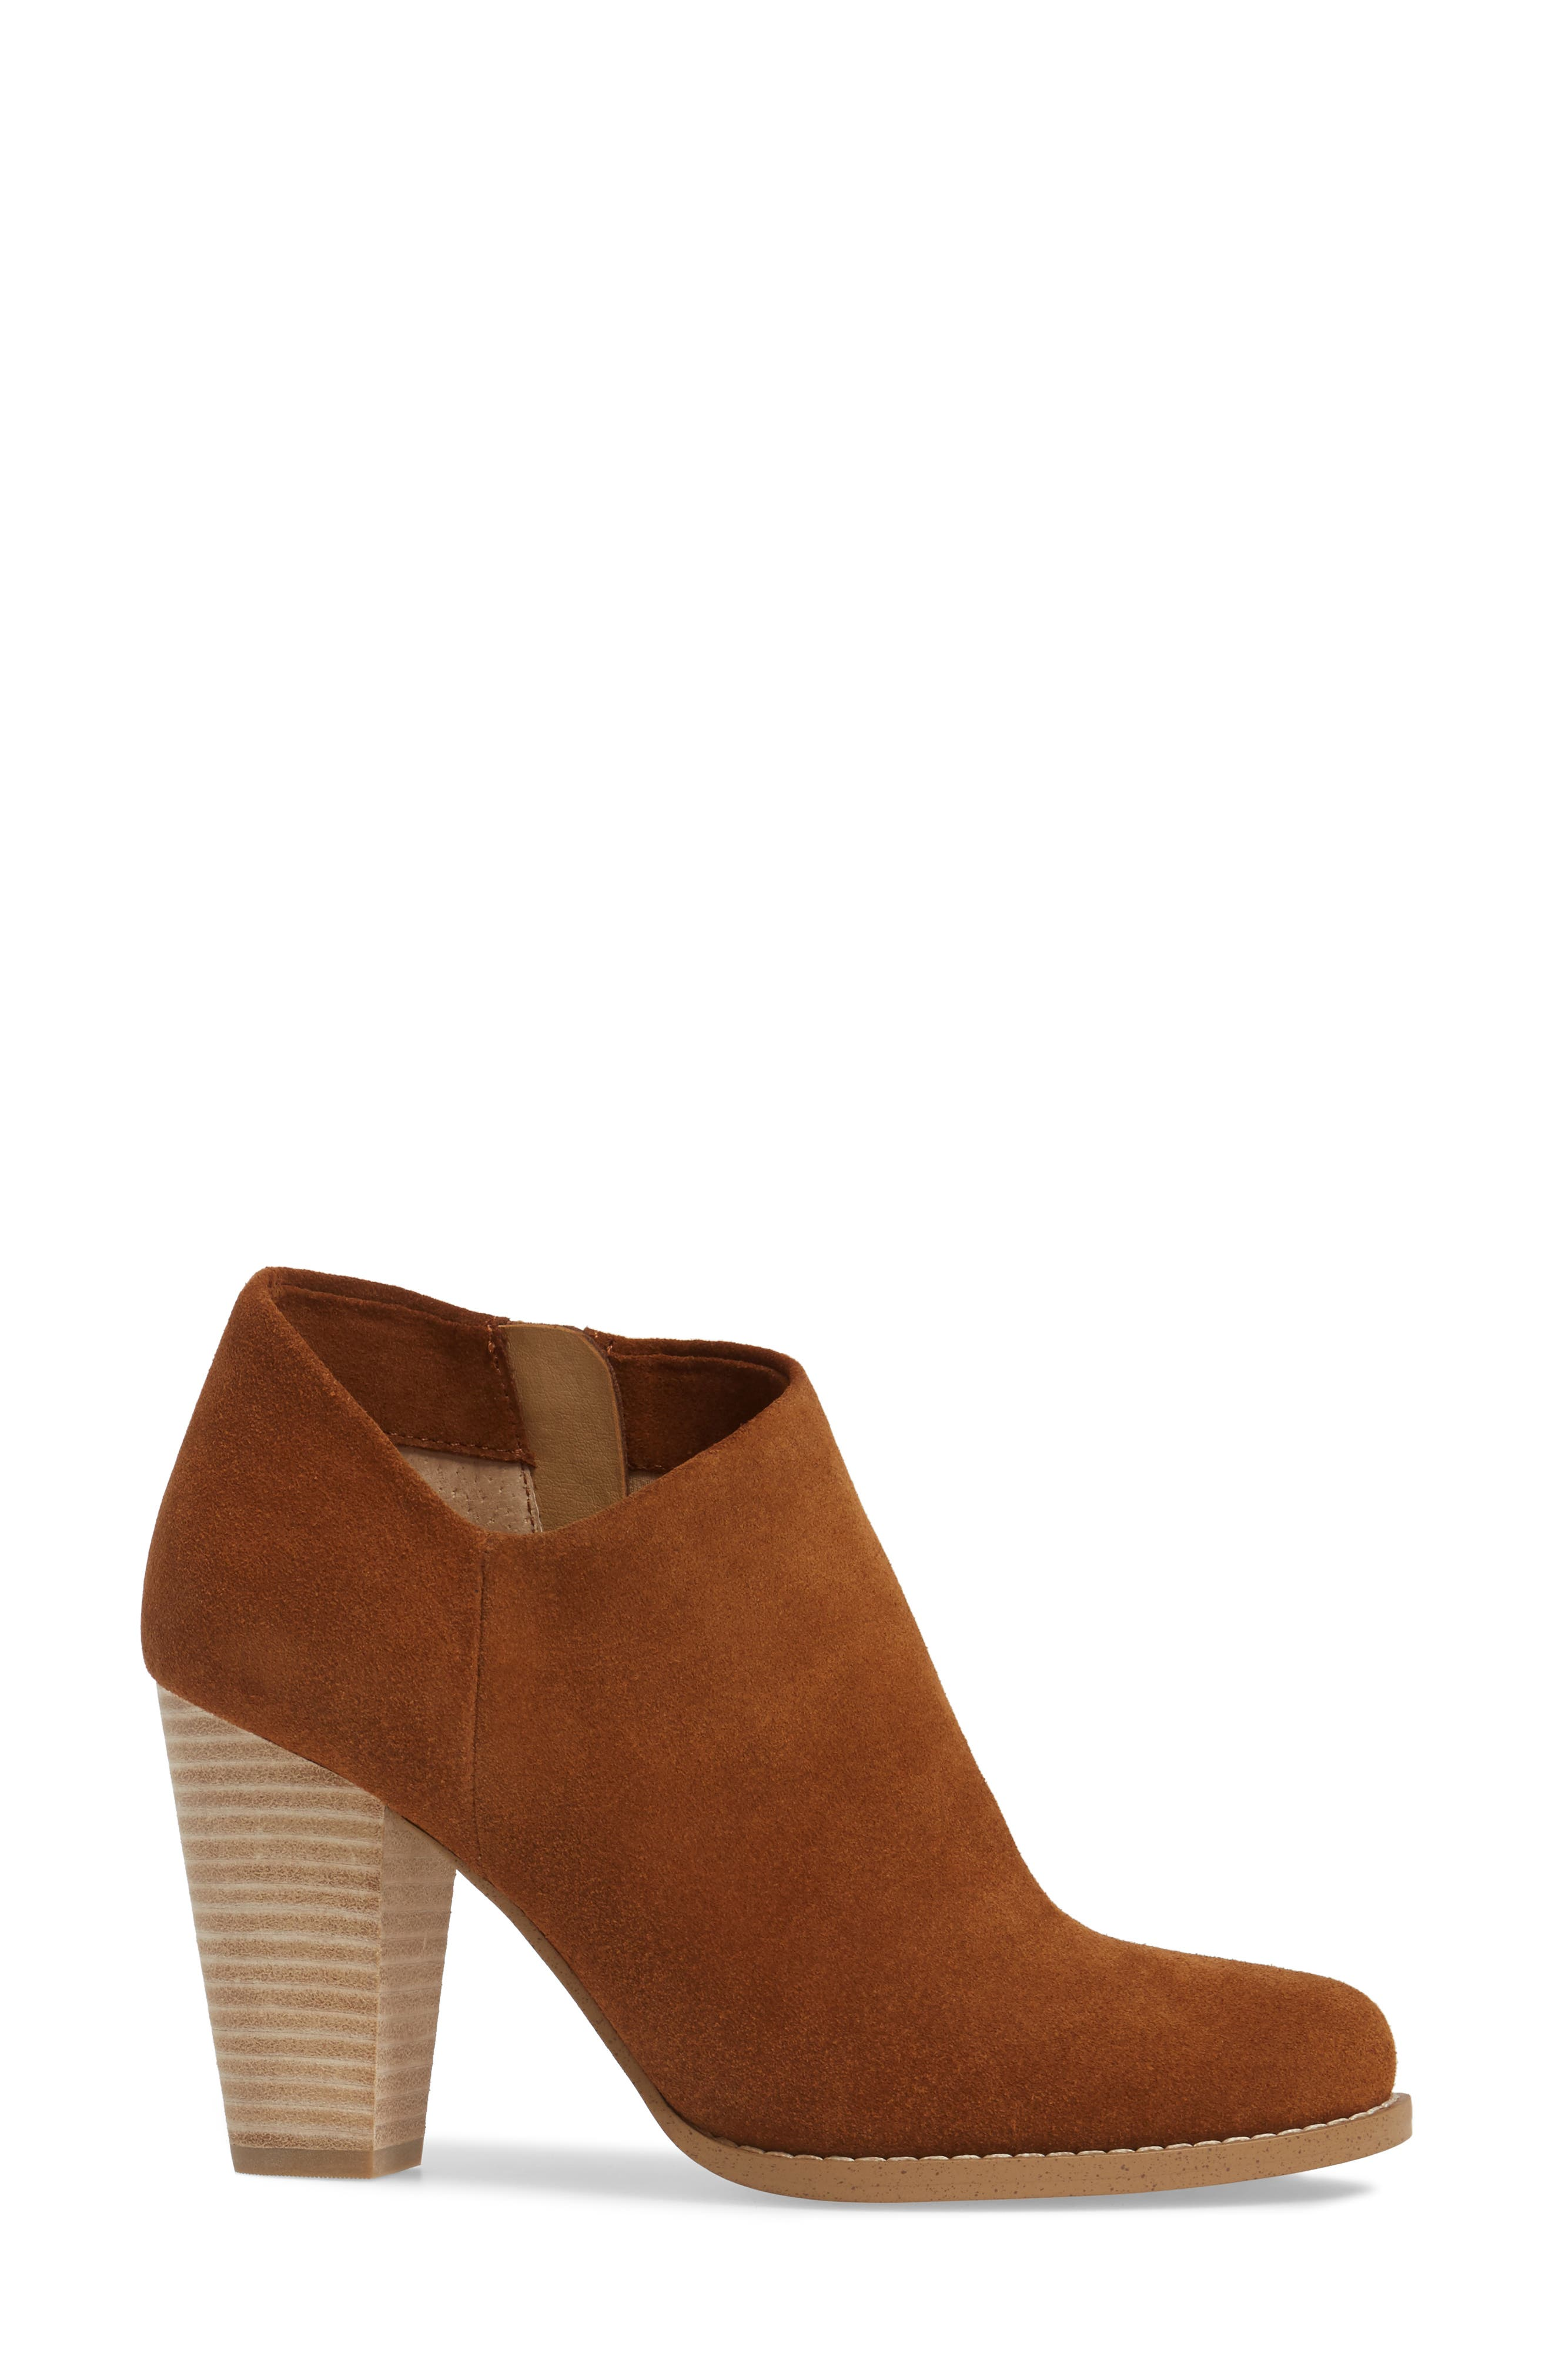 Daphne Bootie,                             Alternate thumbnail 3, color,                             Whiskey Suede